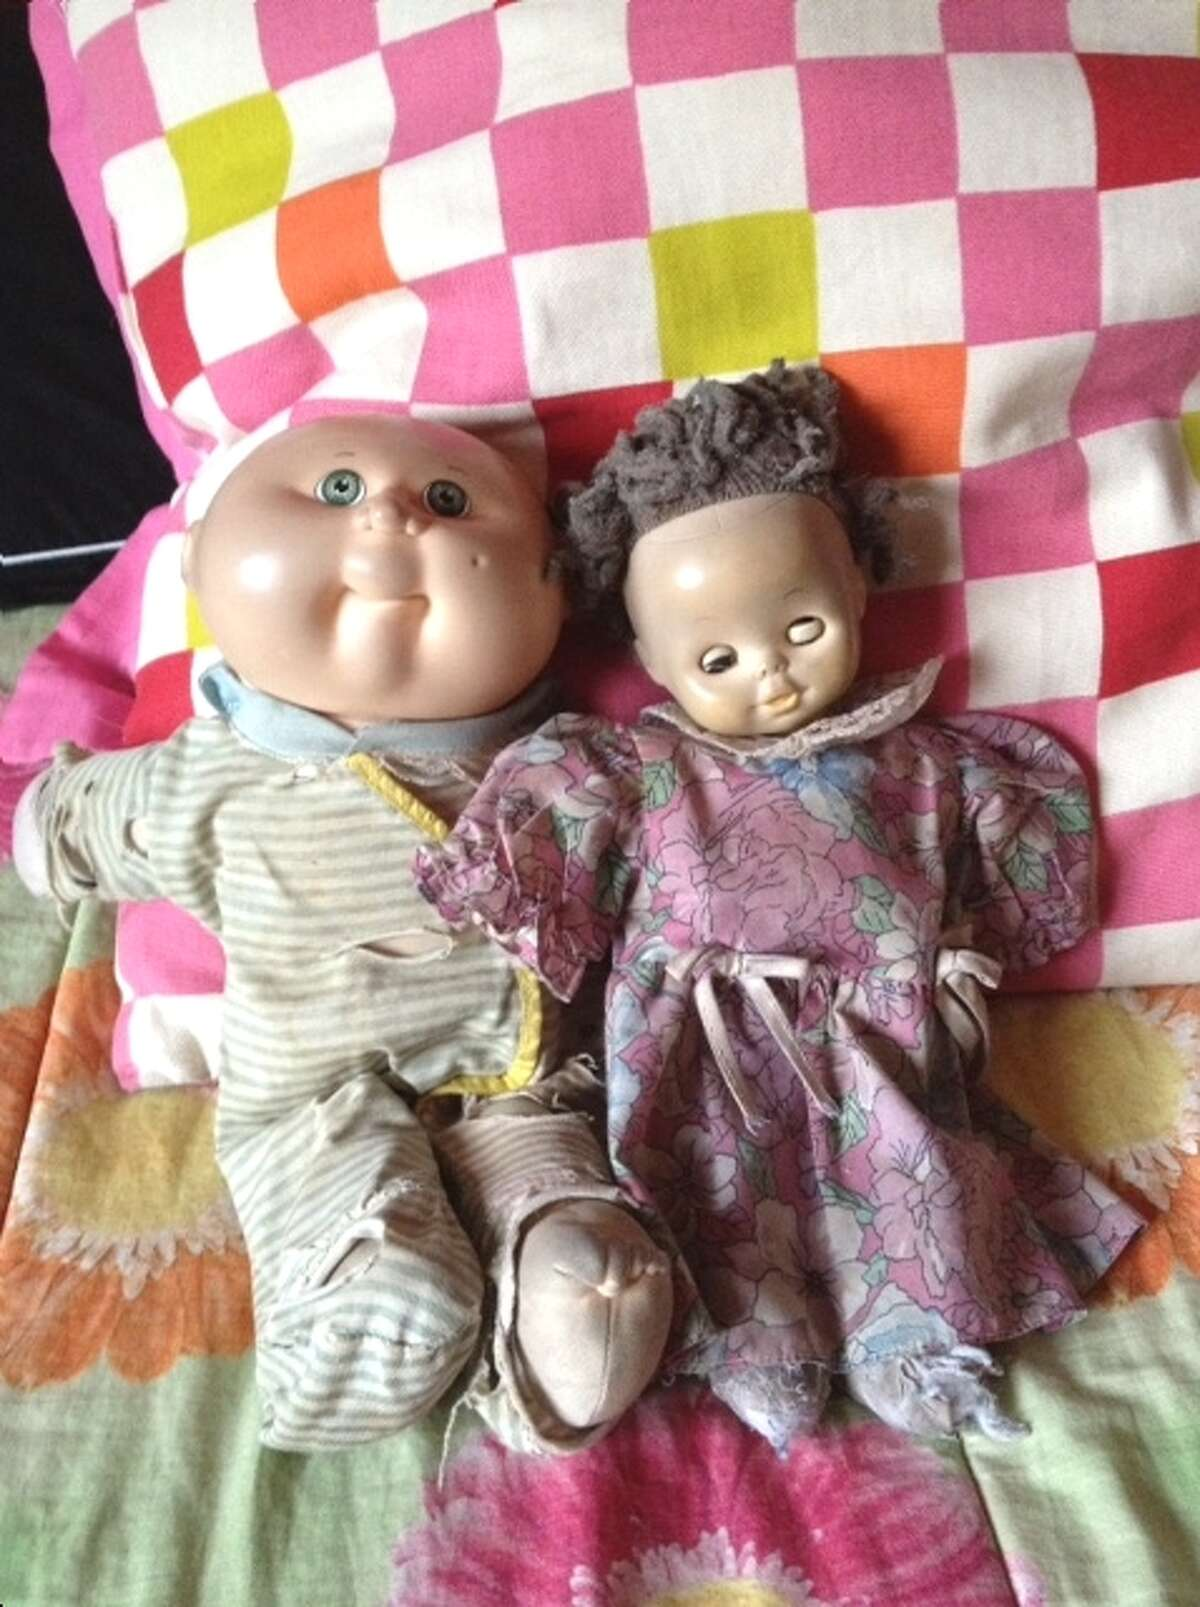 Jeannie and Sasha, a pair of beloved dolls, were left in the safety of home when their owner left for college. (Lynda Shrager photo)